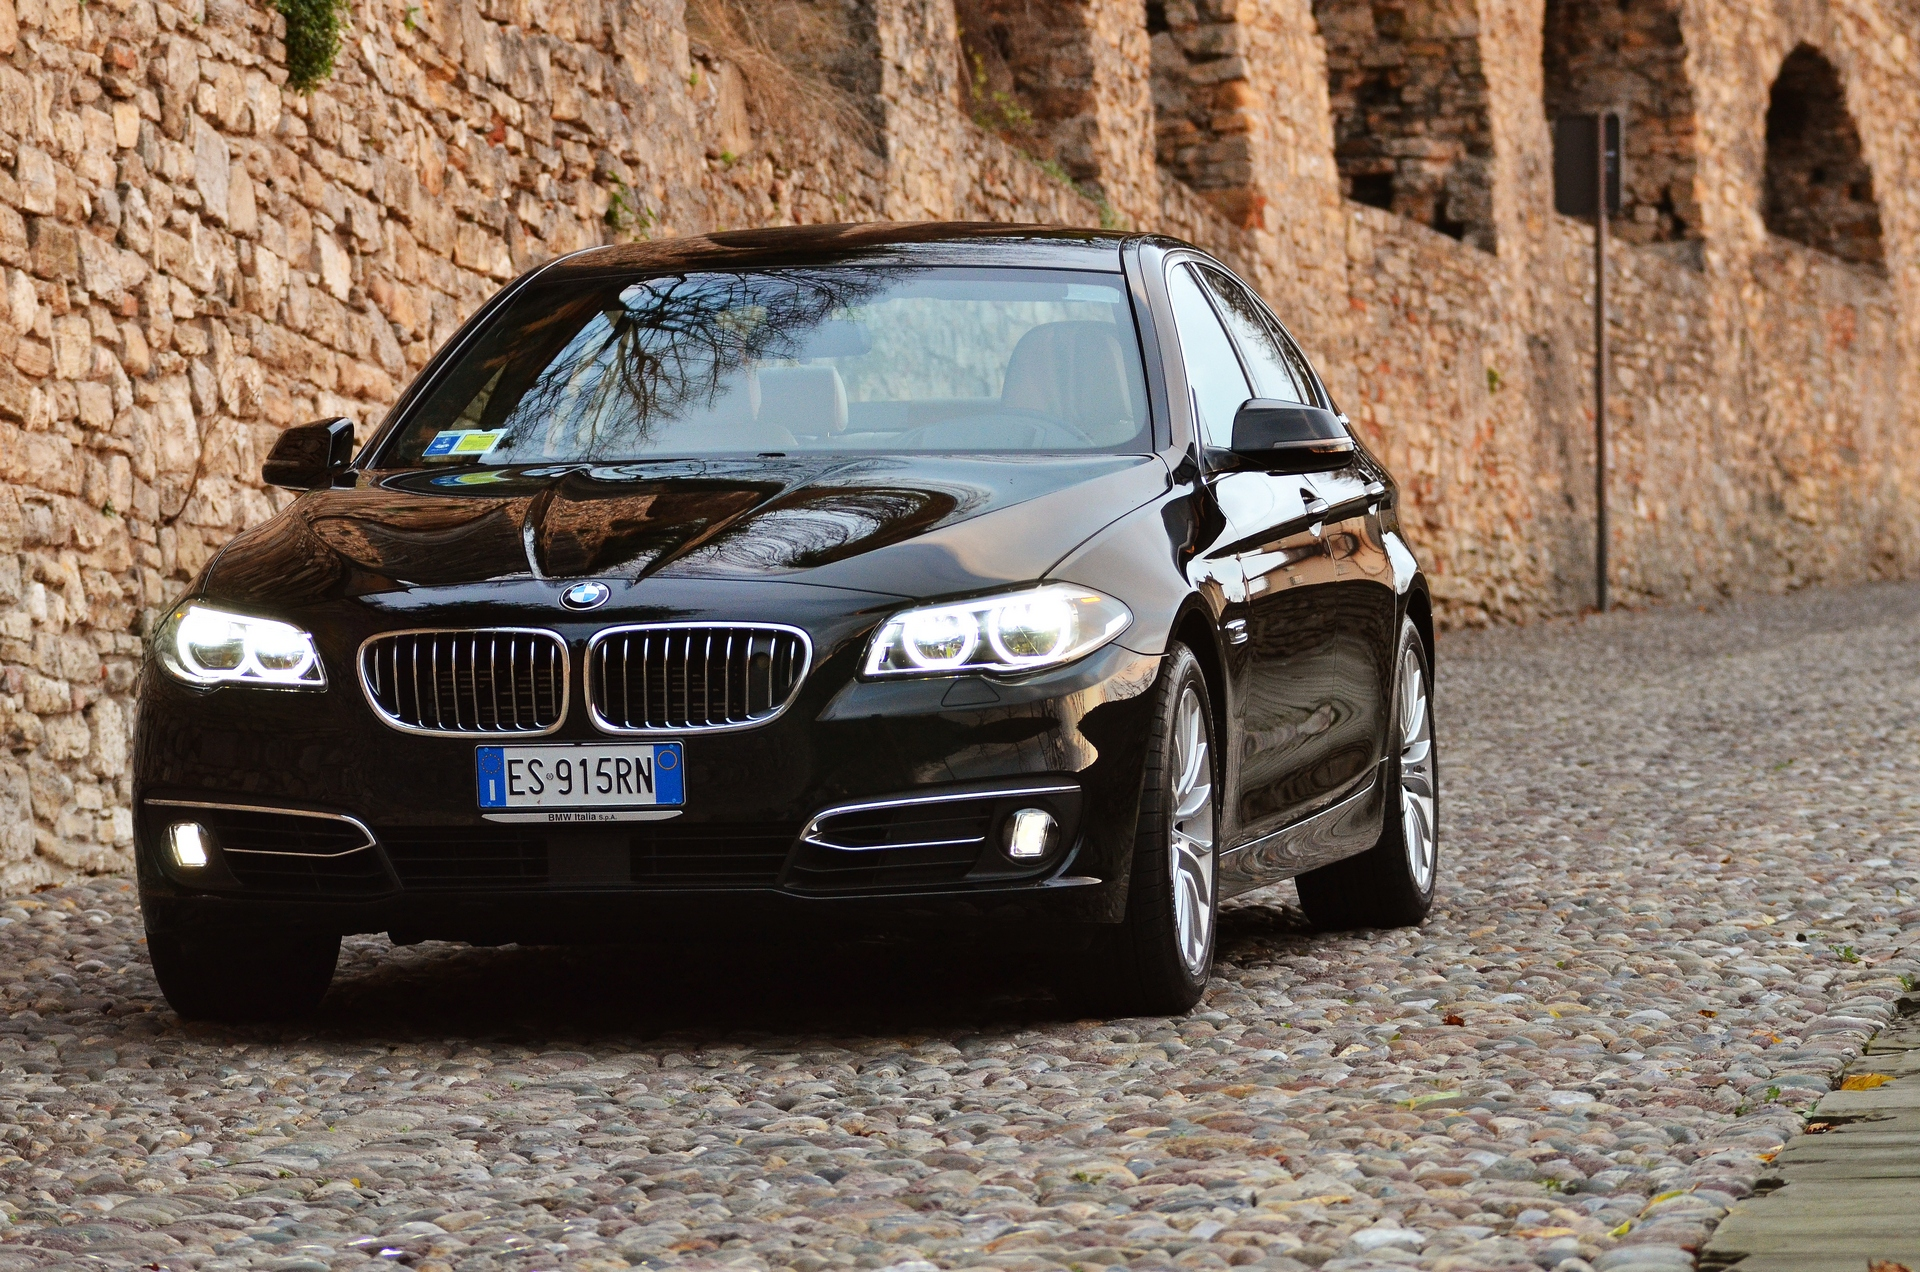 2014 Bmw Activehybrid 5 #5